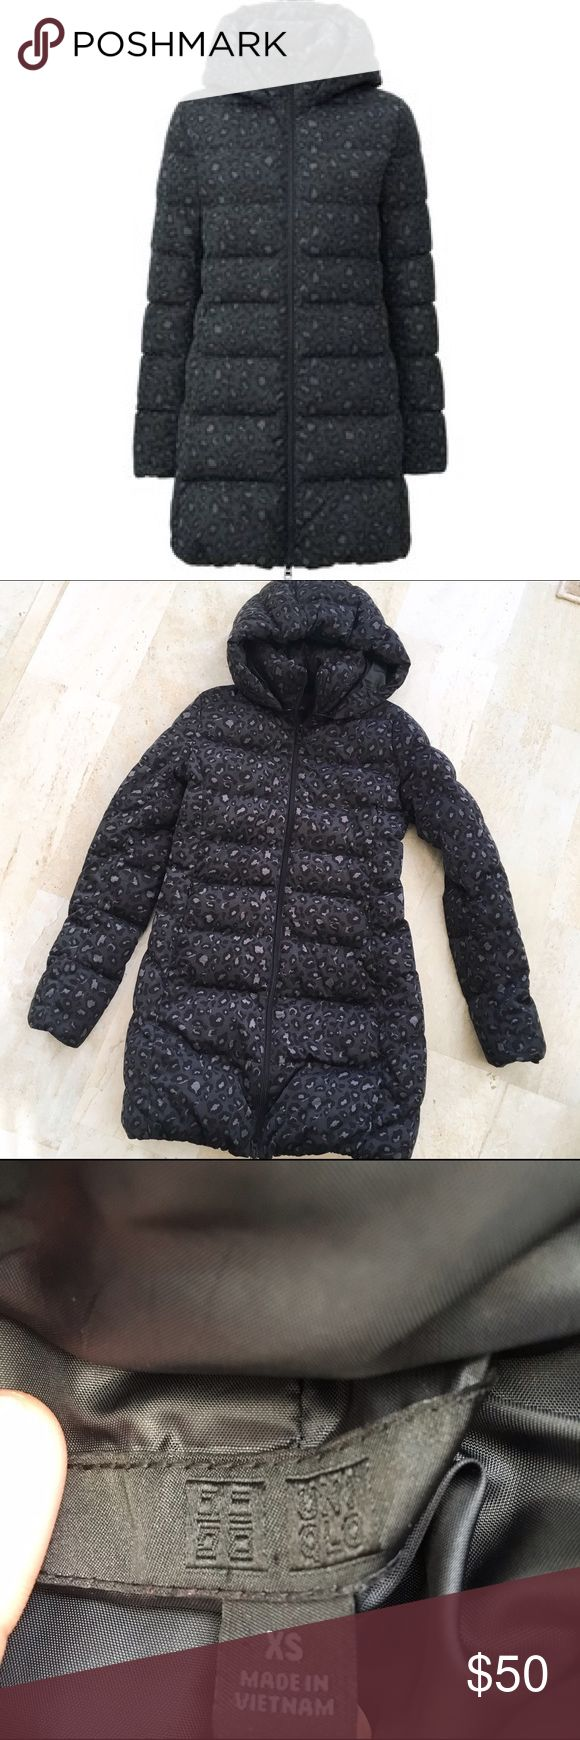 Uniqlo Leopard Puffer Down Coat This is a NWOT Uniqlo Leopard Puffer Jacket. In excellent condition. Runs true to size. Made of polyester down. Reasonable offers accepted. Uniqlo Jackets & Coats Puffers